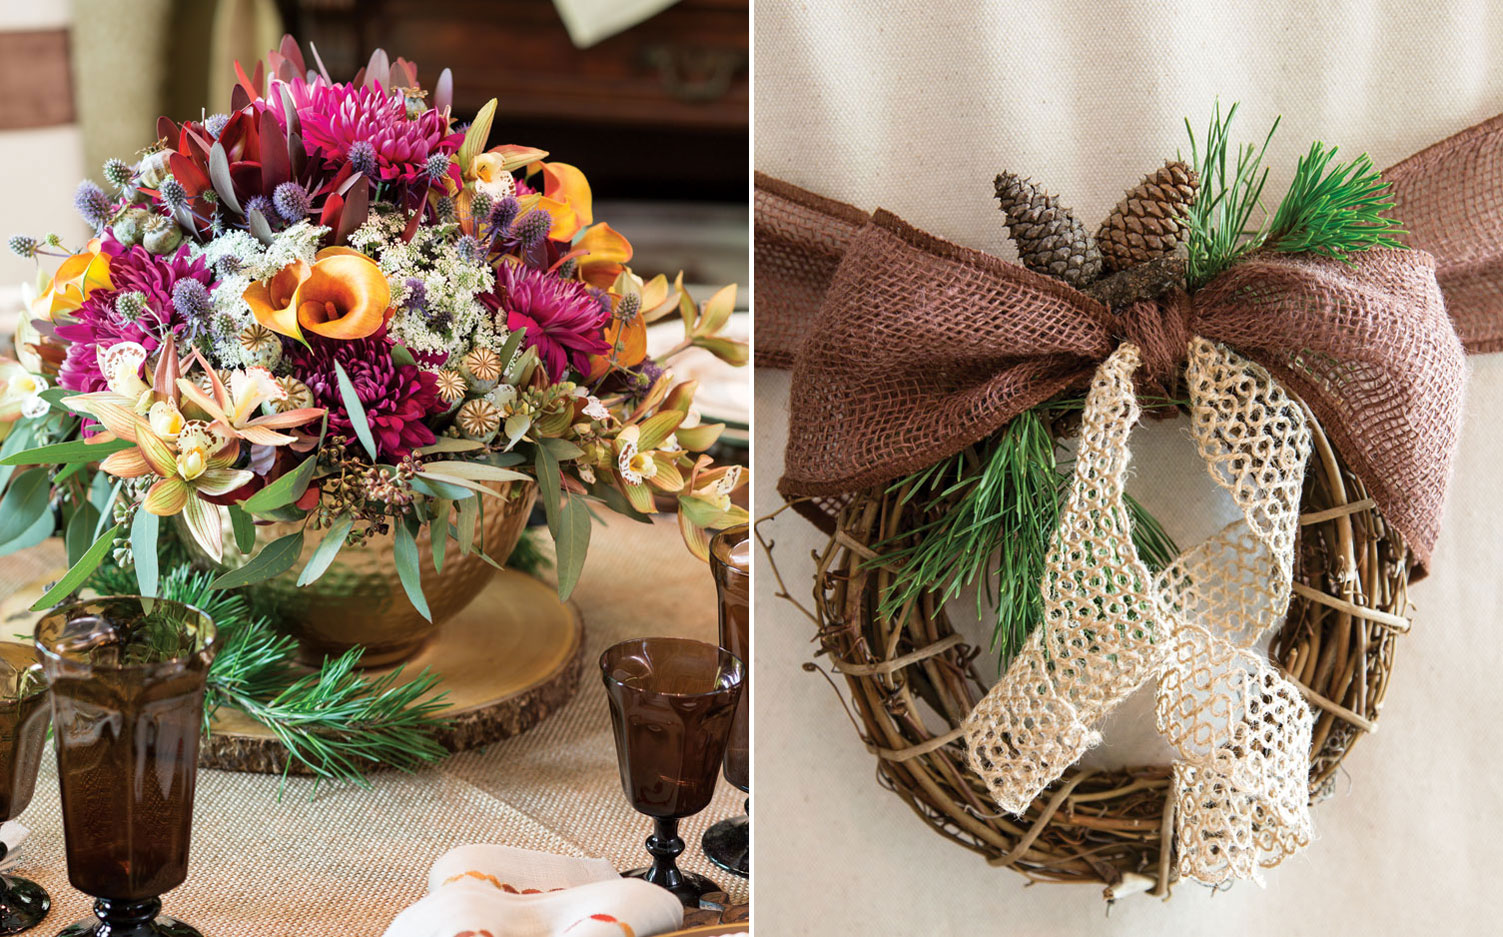 A picture of a flower arrangement and a grapevine wreath attached to a chair for a Thanksgiving tablescape